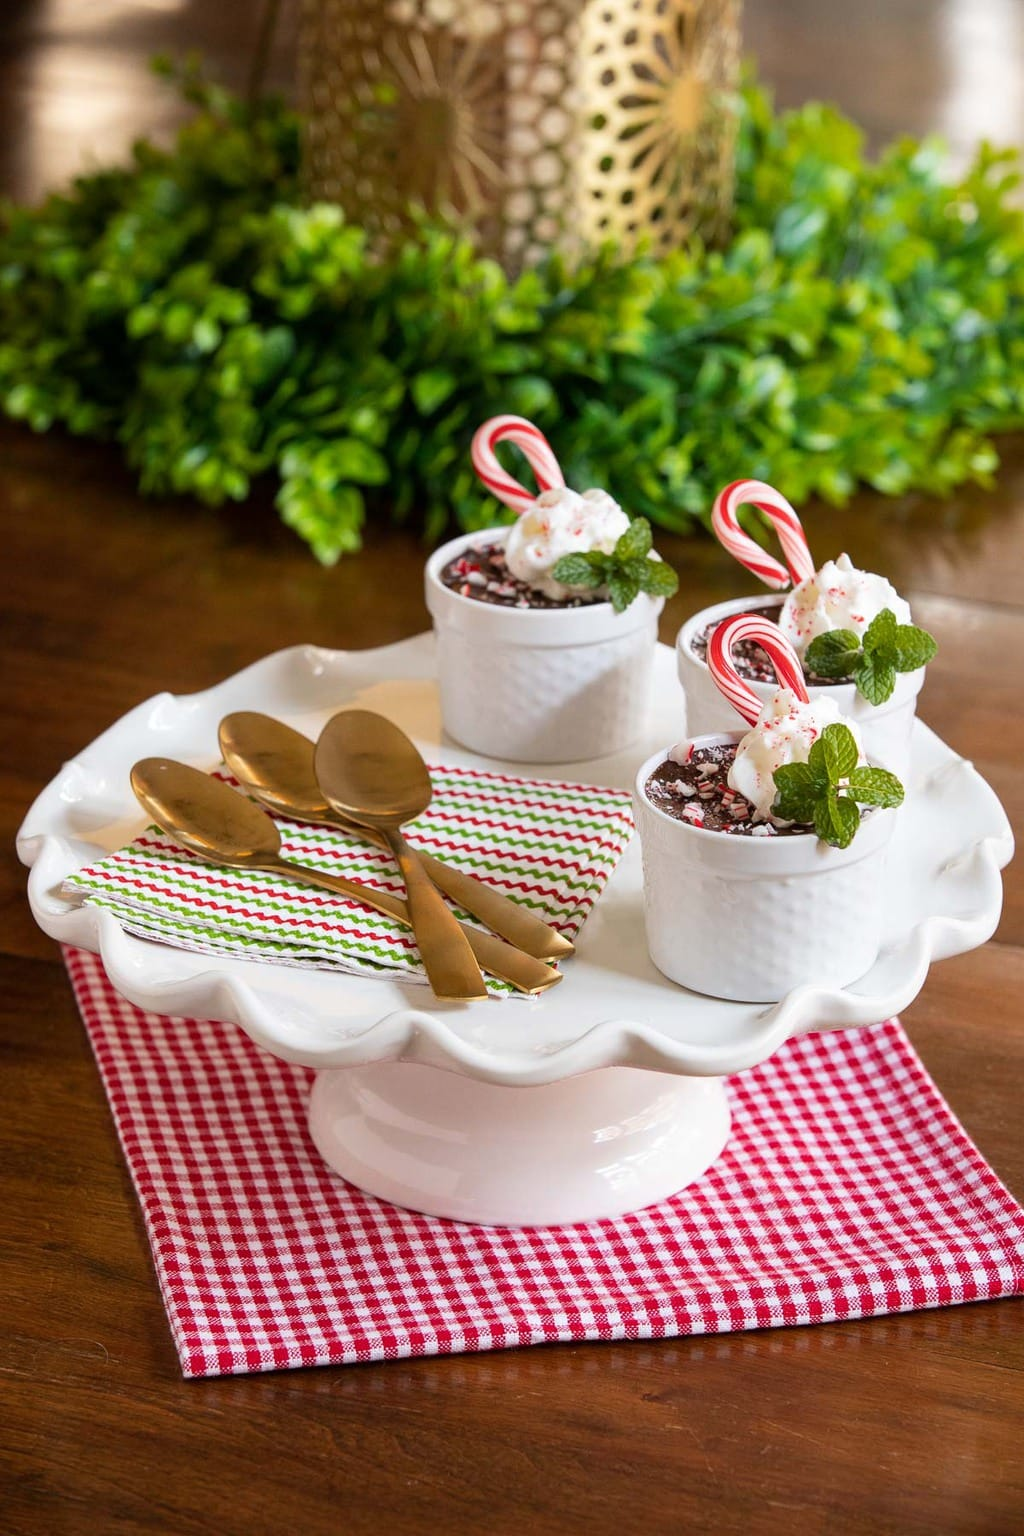 Vertical photo of cups of Ridiculously Easy Chocolate Peppermint Pots de Crème on a white scalloped pedestal plate on a wood table. The cups are garnished with candy canes, fresh mint and whipped cream.